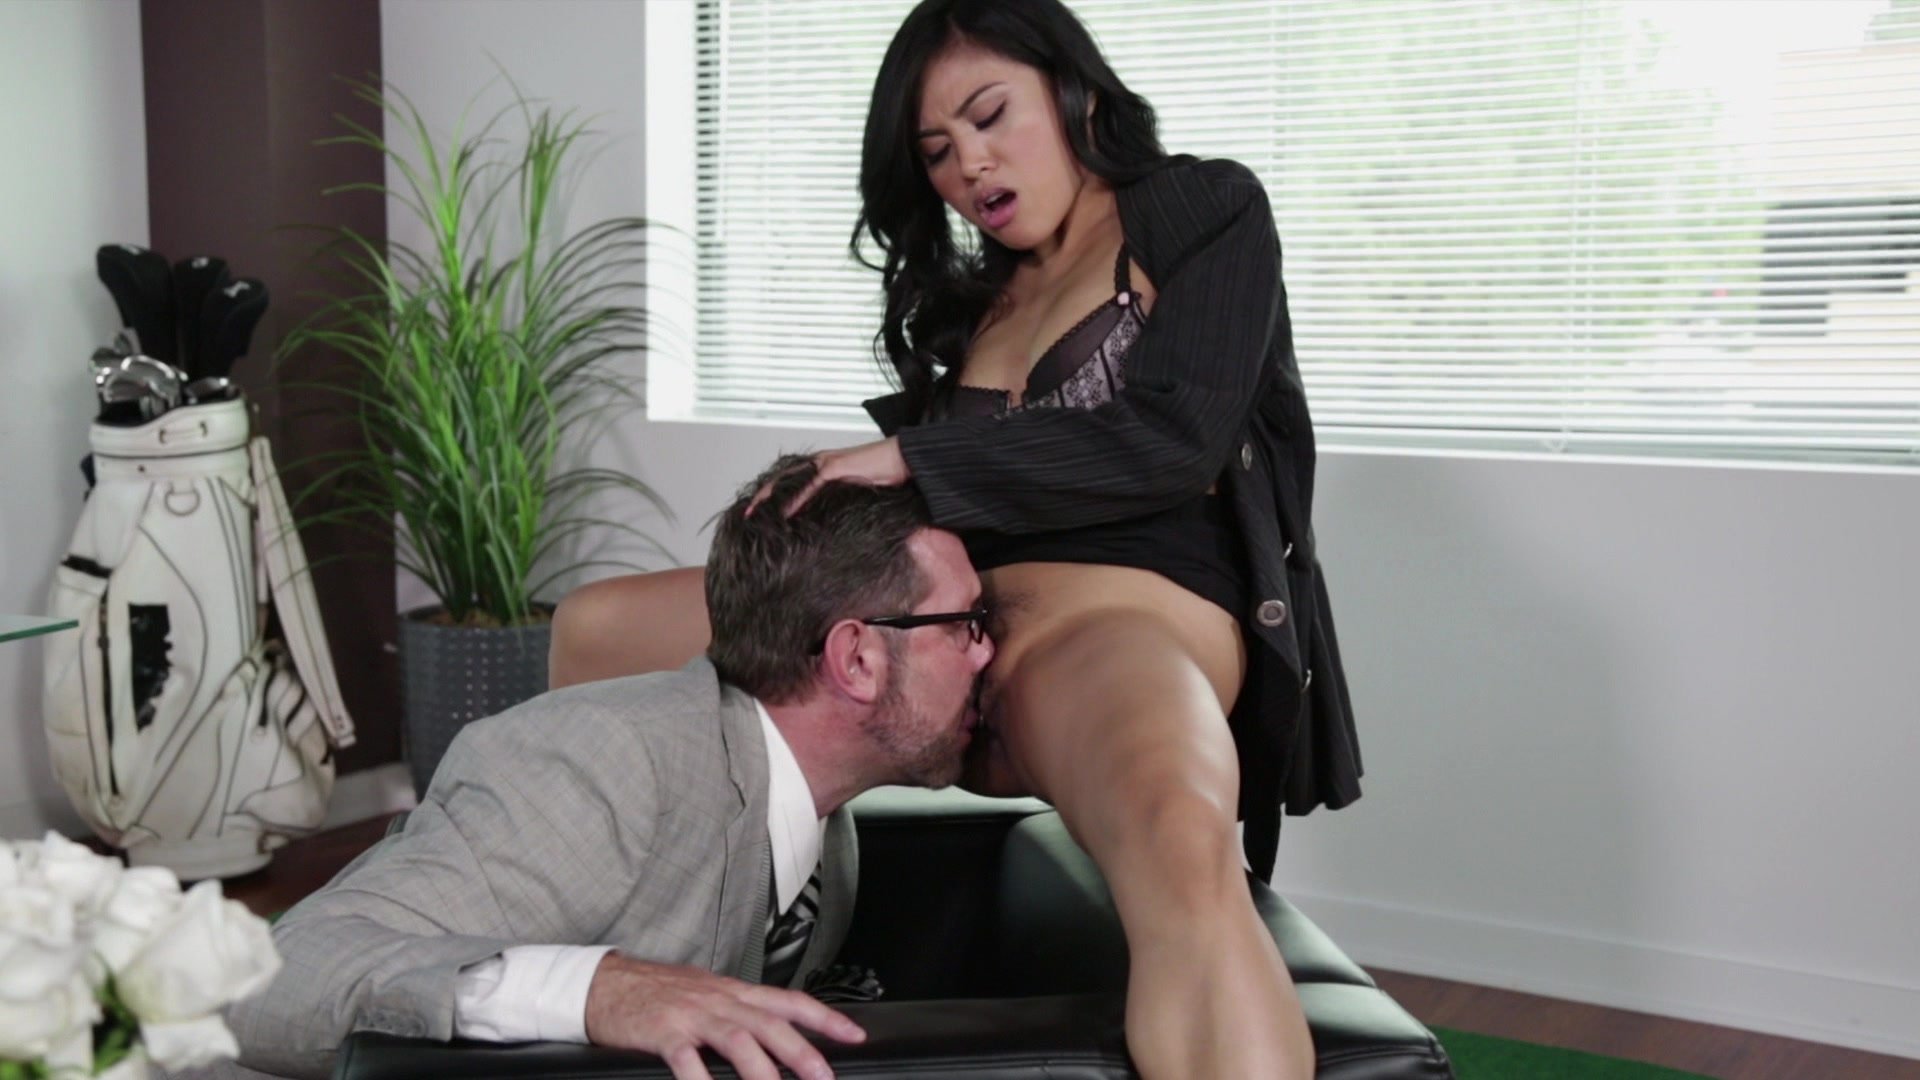 Scene with Ember Snow - image 11 out of 20